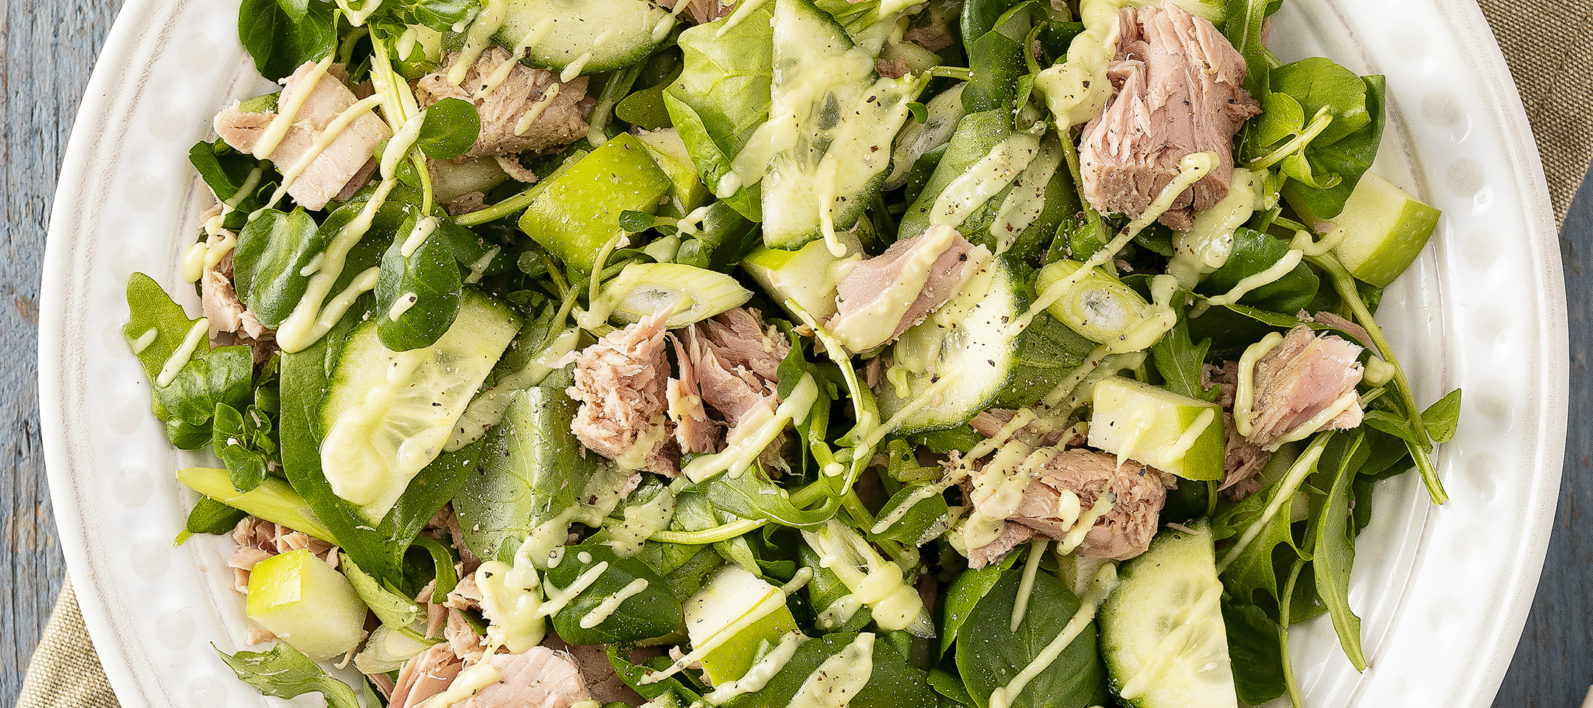 Super Greens And Tuna Salad John West Uk